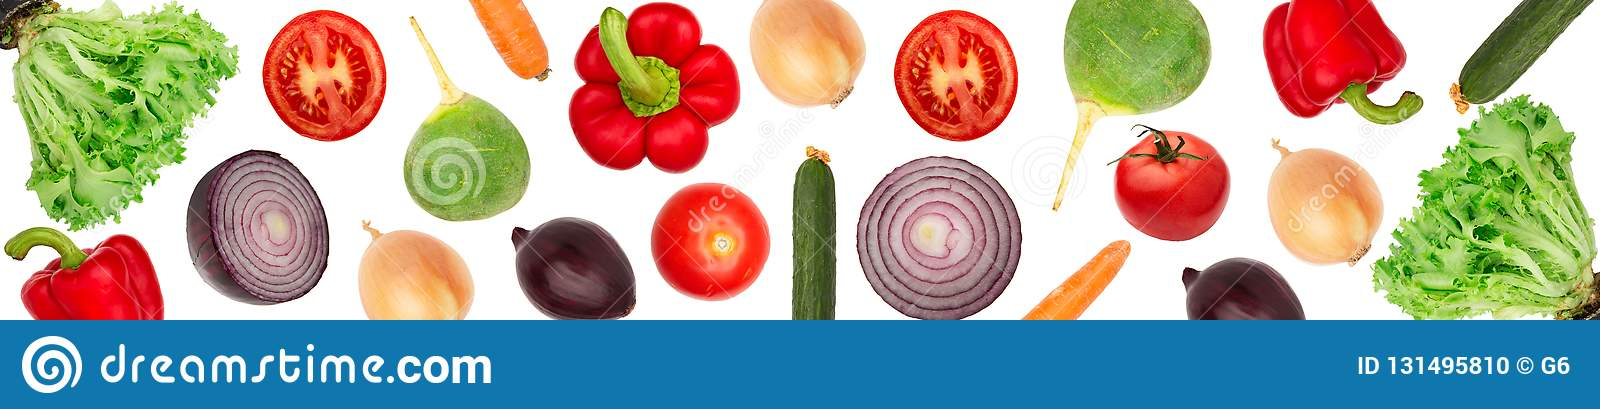 Set vegetables isolated white background. Wide panoramic photo